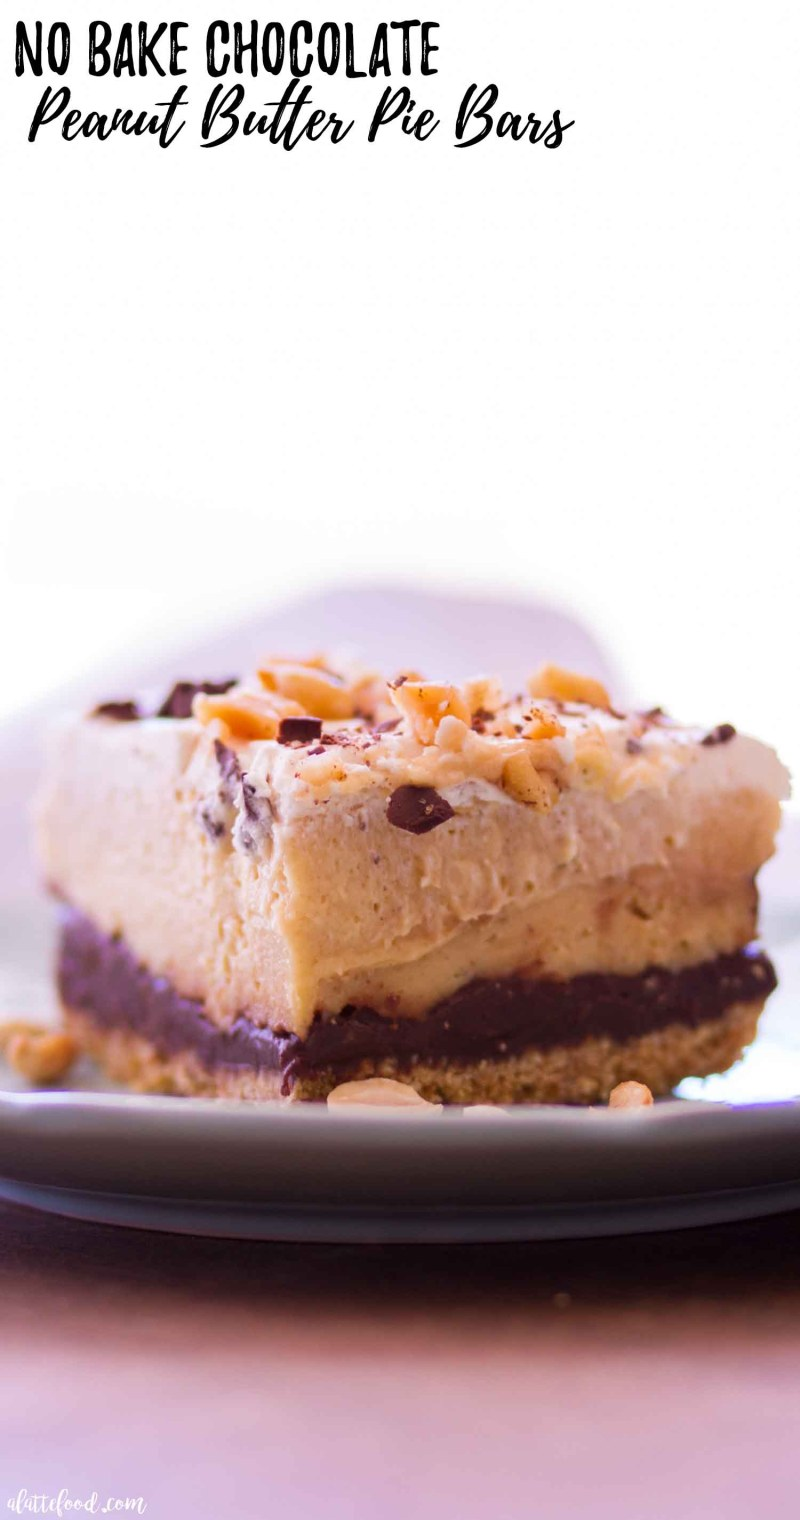 no bake chocolate peanut butter pie bars photo with text